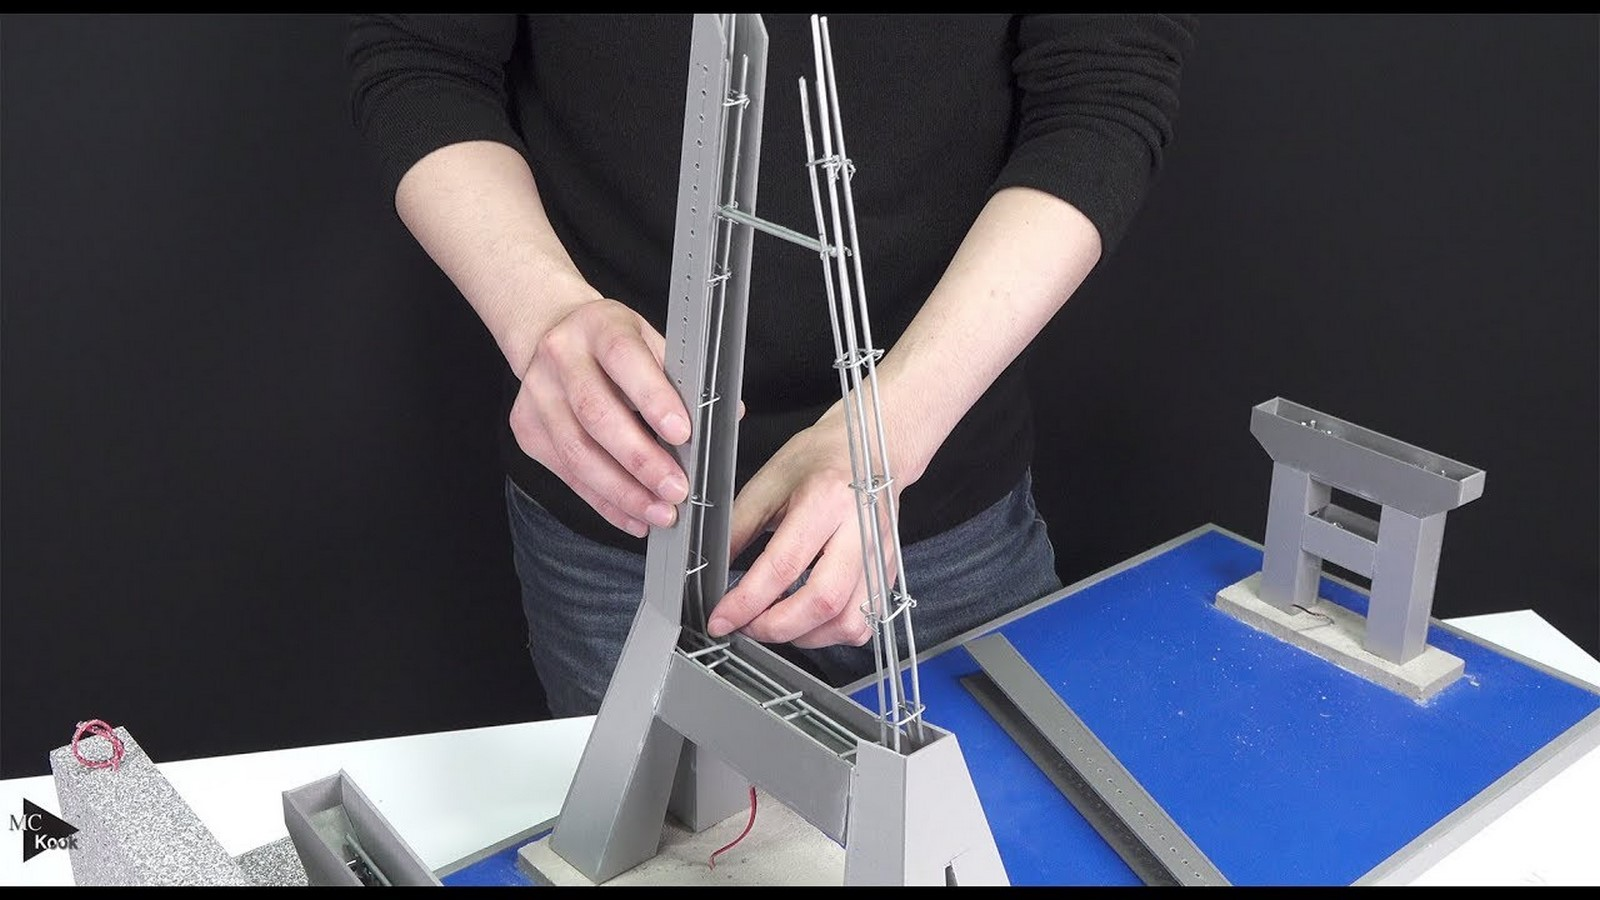 10 youtubers to watch for architectural model making-MC Kook - Sheet2